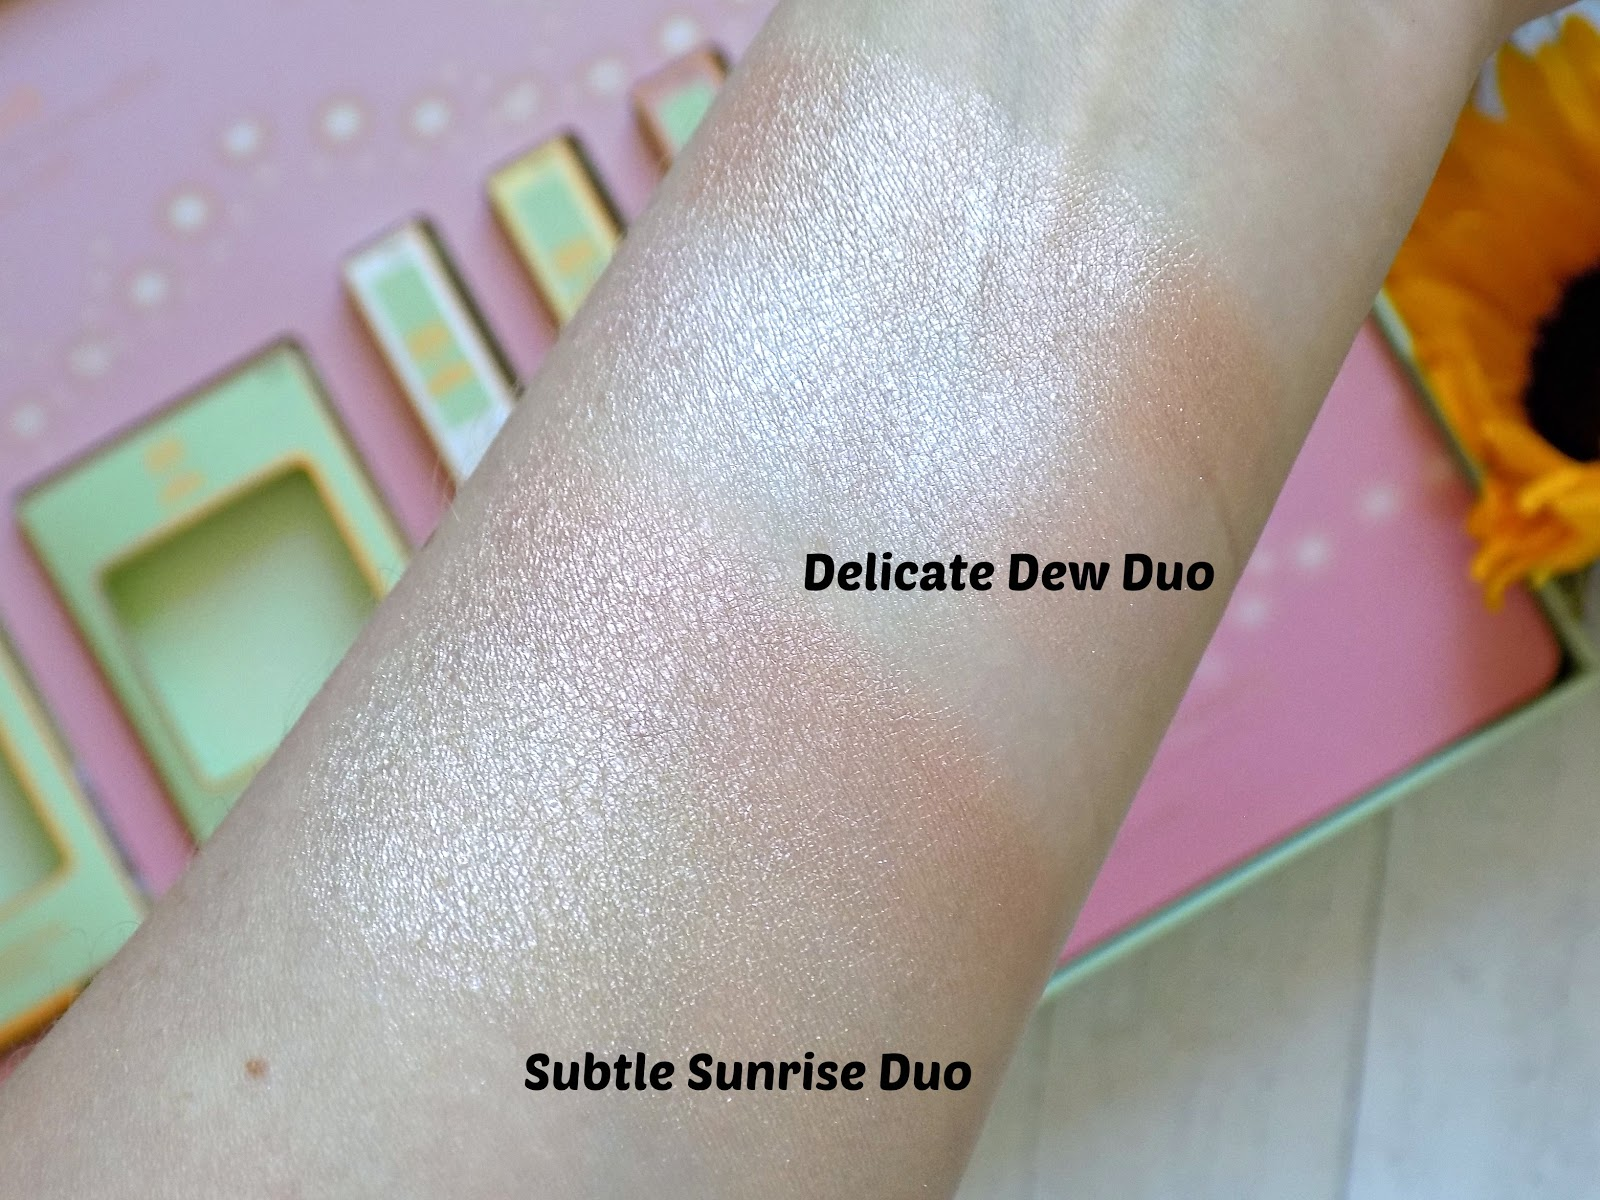 Pixi Glow-y Gossamer Duo: Delicate Dew and Subtle Sunrise